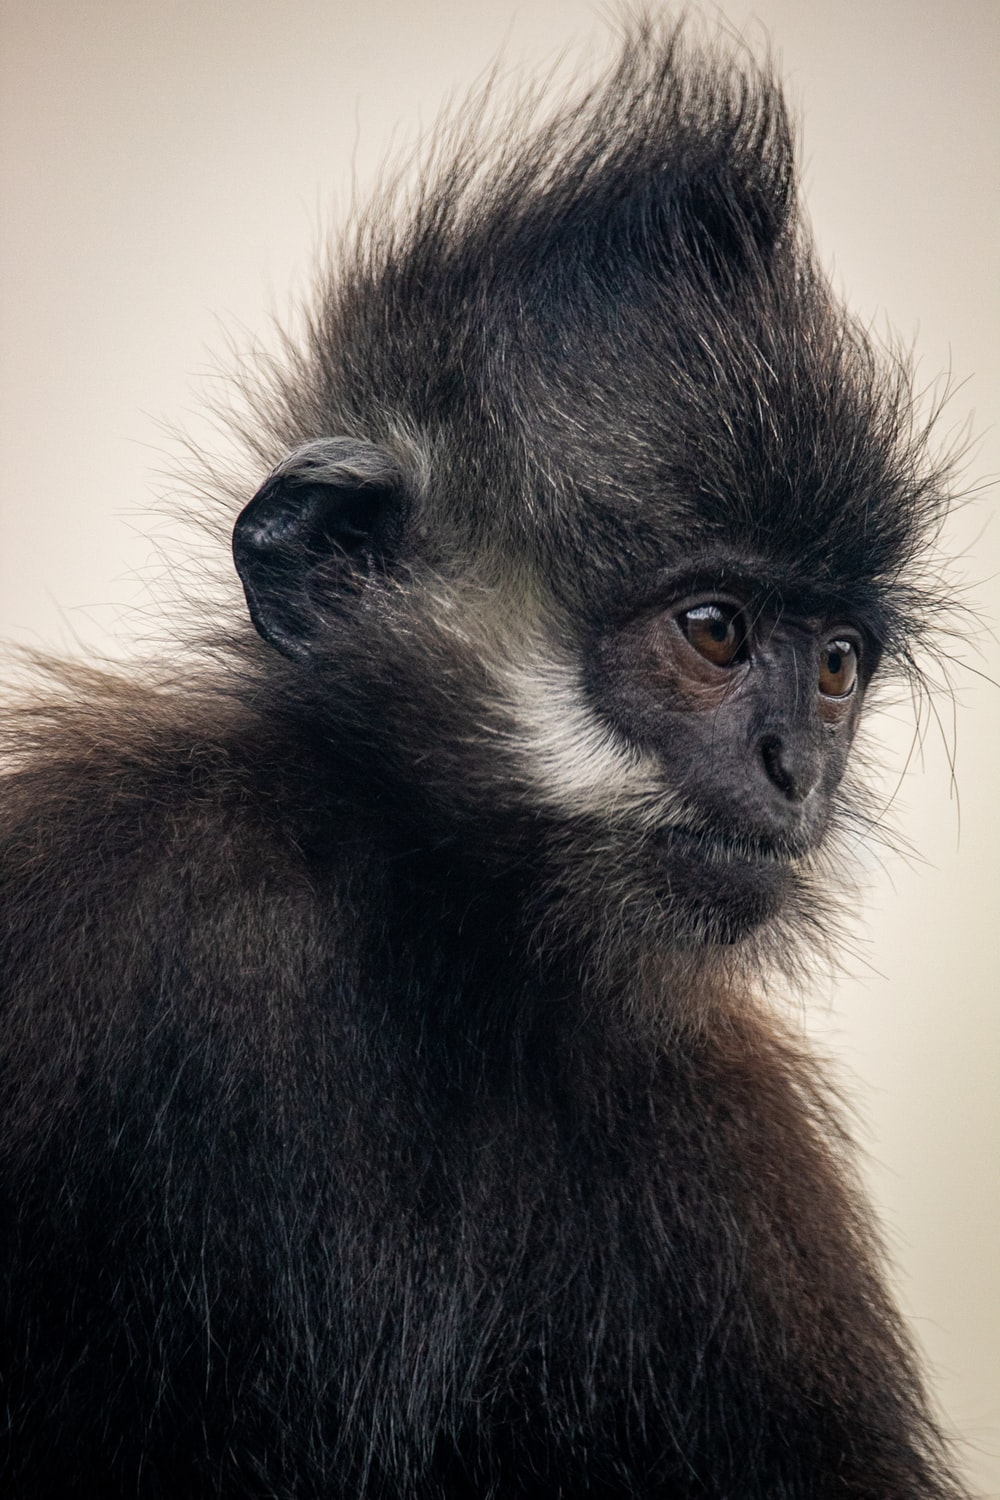 black and brown monkey on brown wooden surface